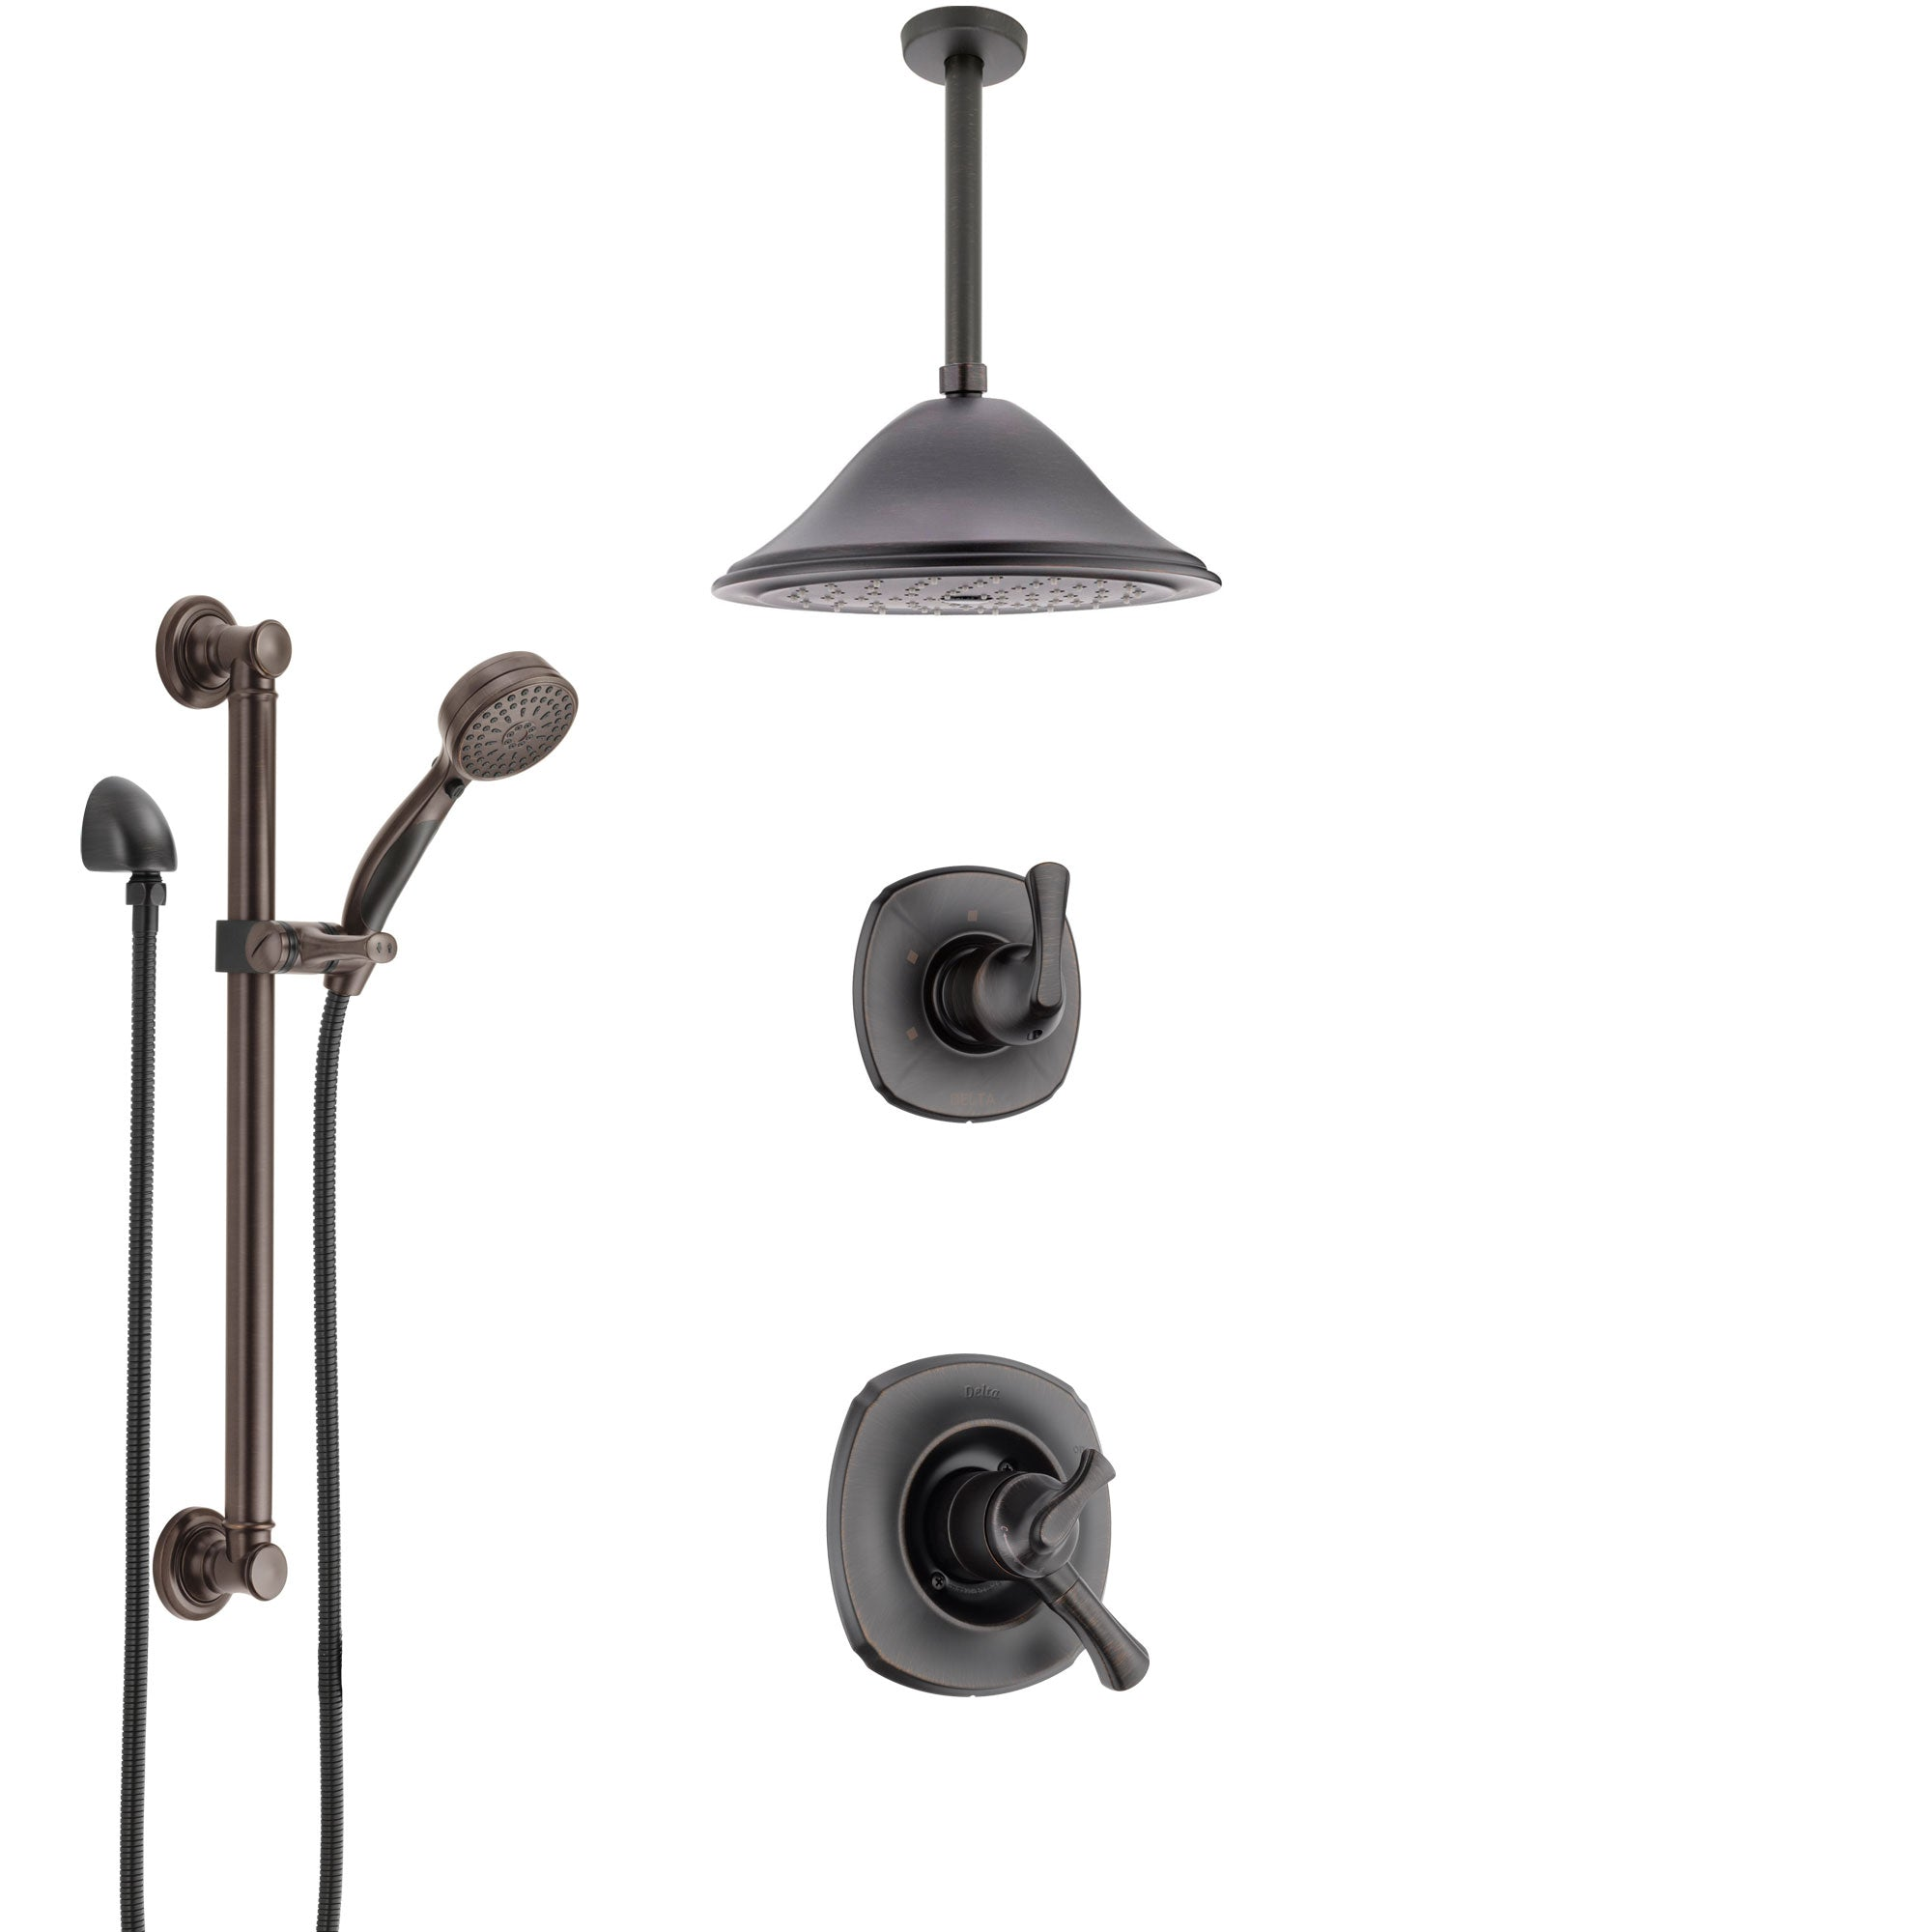 Delta Addison Venetian Bronze Shower System with Dual Control Handle, Diverter, Ceiling Mount Showerhead, and Hand Shower with Grab Bar SS1792RB4